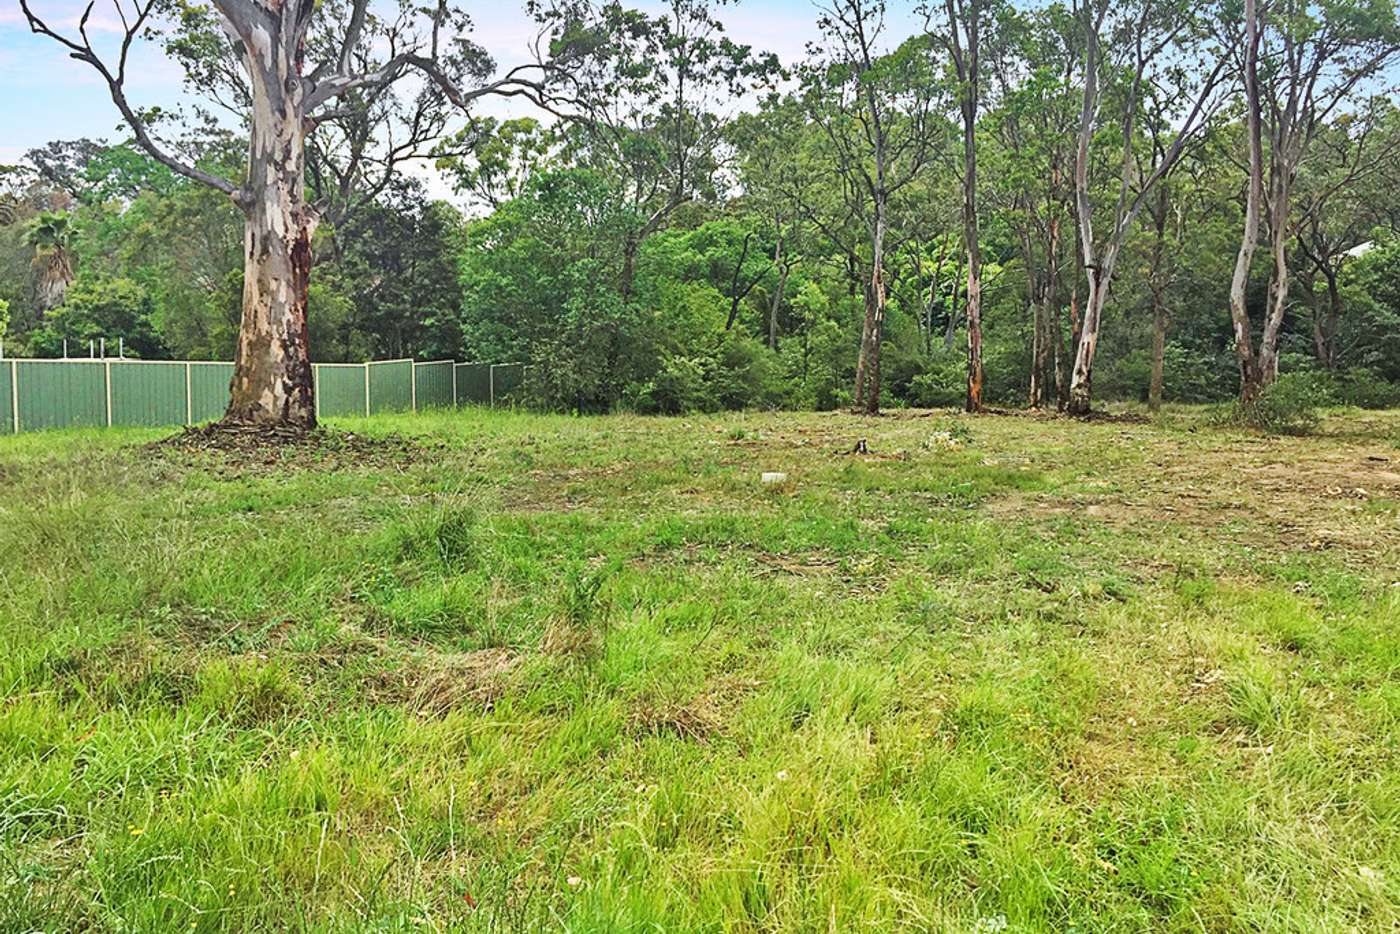 Main view of Homely residentialLand listing, Lot 12, 45 Rita, Thirlmere NSW 2572